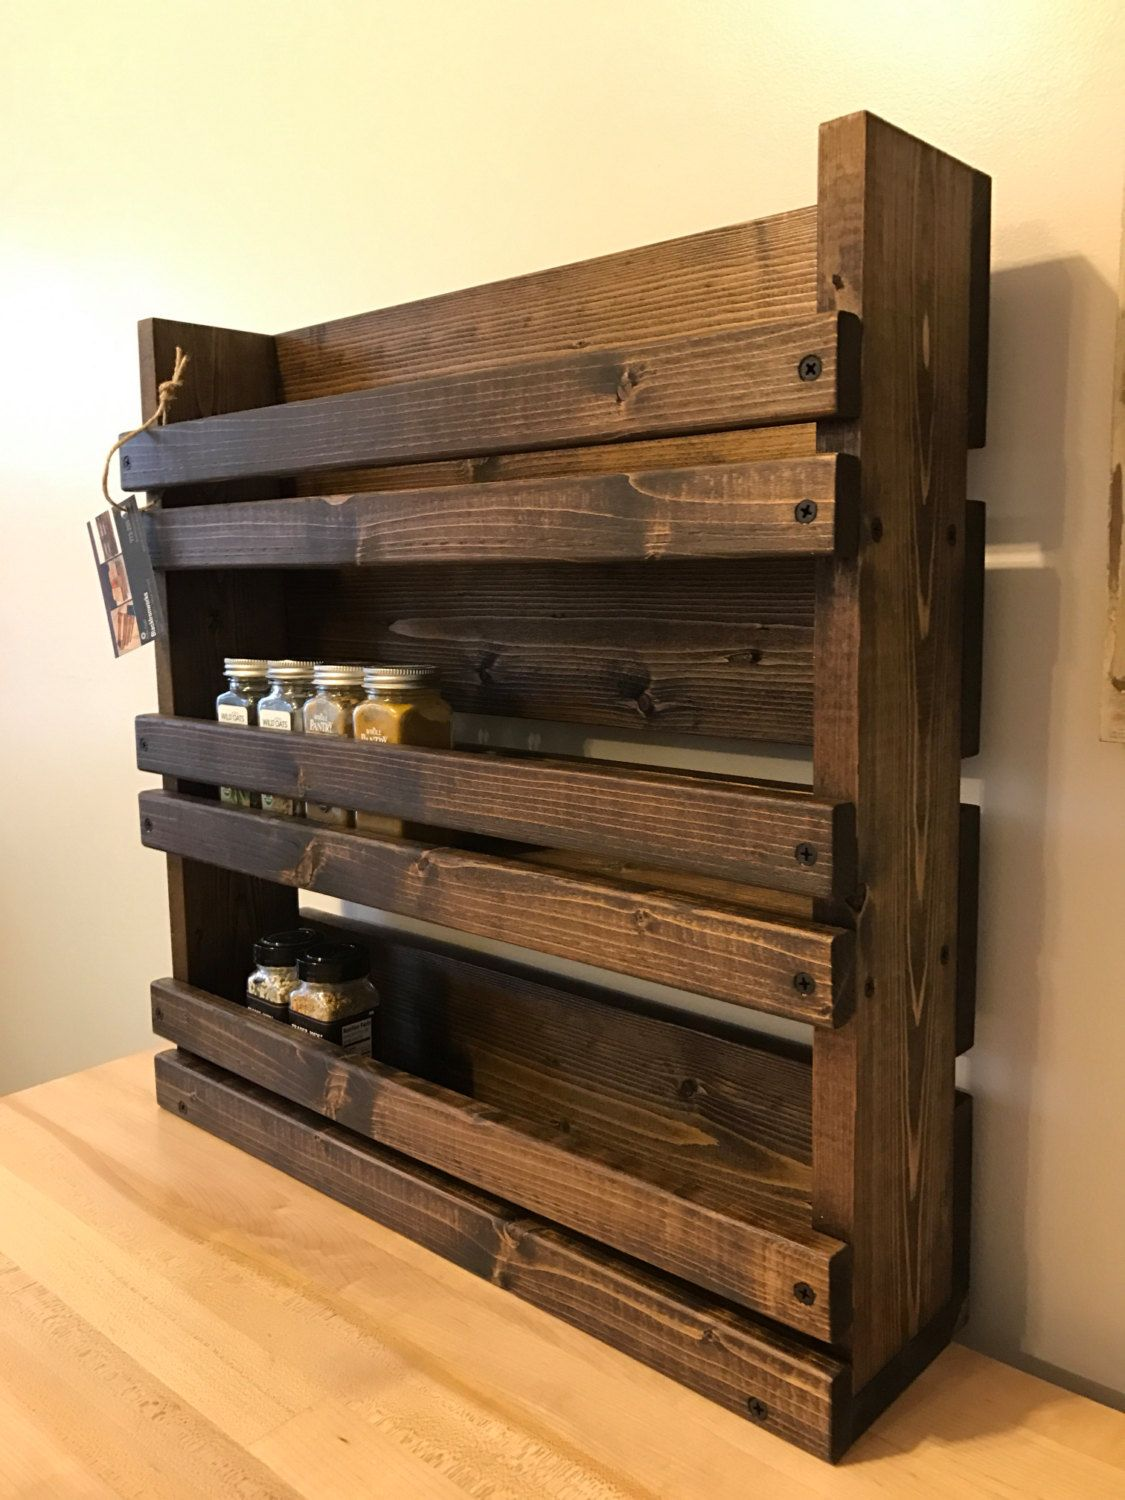 Wood Spice Rack For Wall Gorgeous Spice Up Your Kitchen With Our Simple And Rustic Style Solid Wood Inspiration